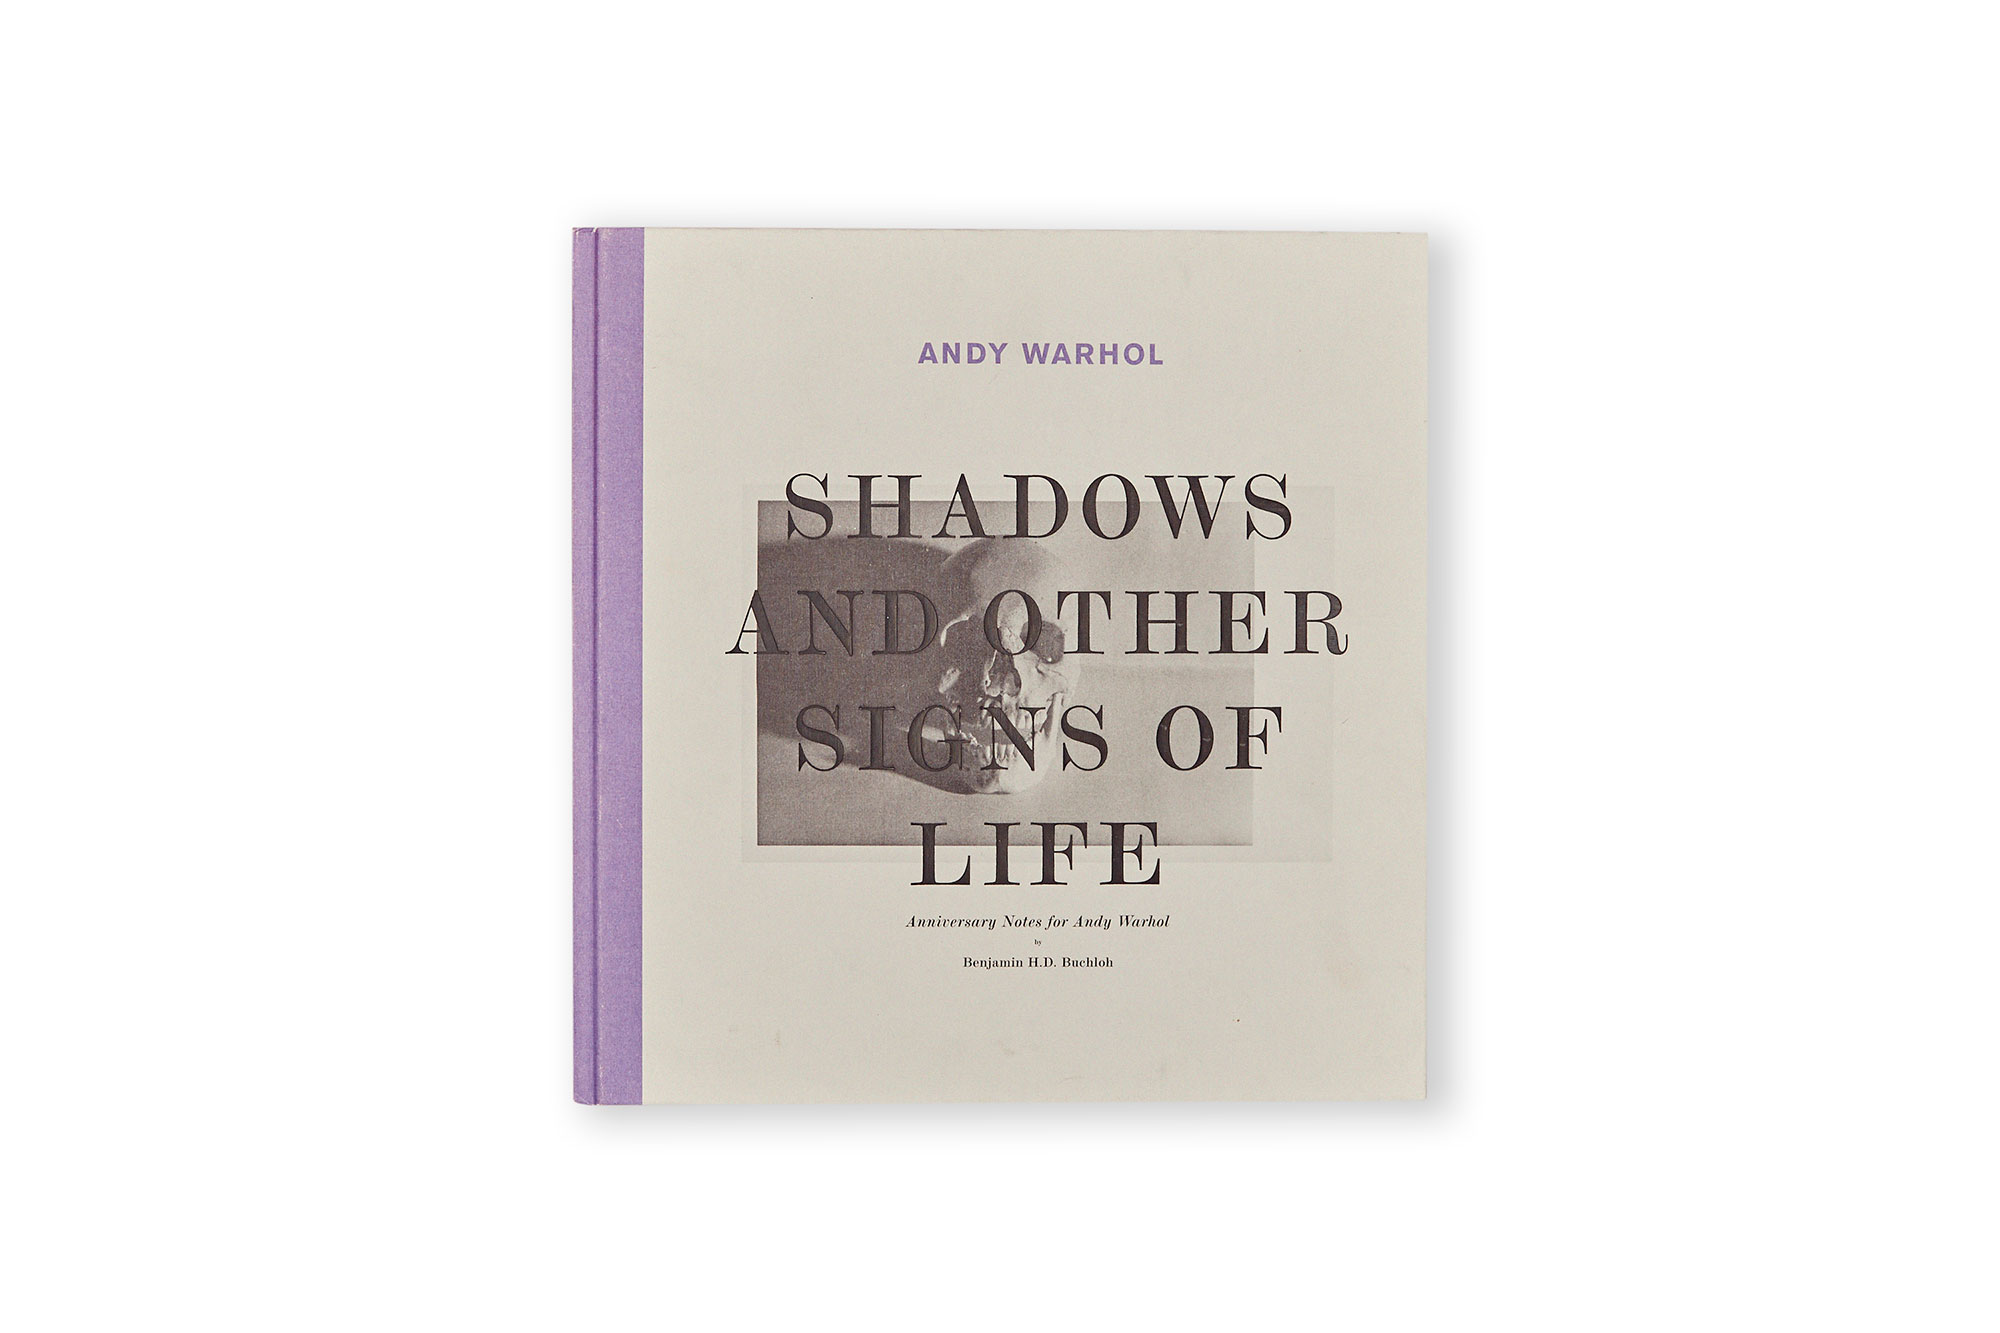 SHADOWS AND OTHER SIGNS OF LIFE, andy warhol.